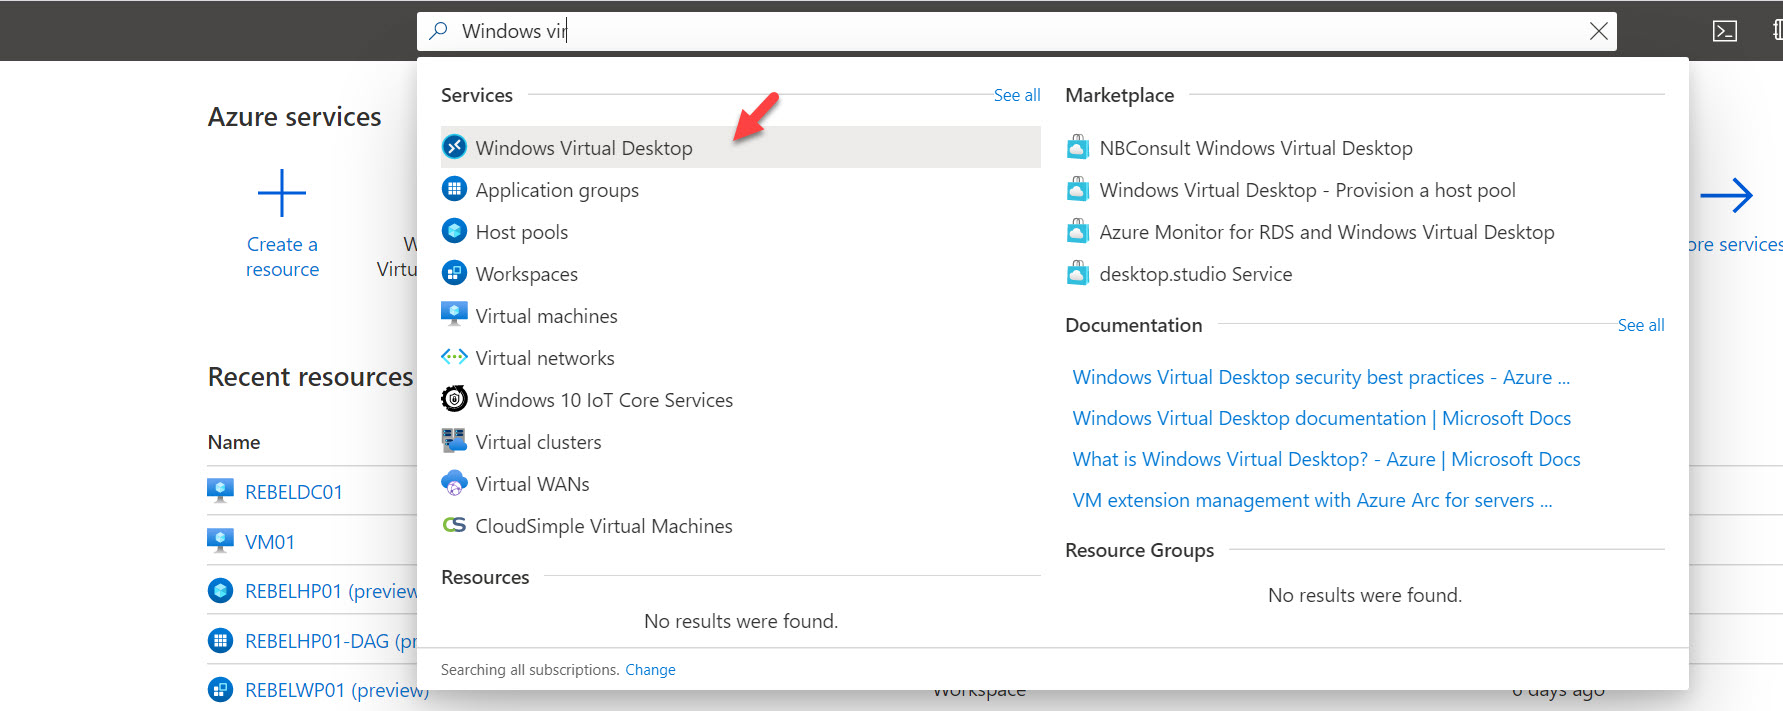 Windows Virtual Desktop azure service